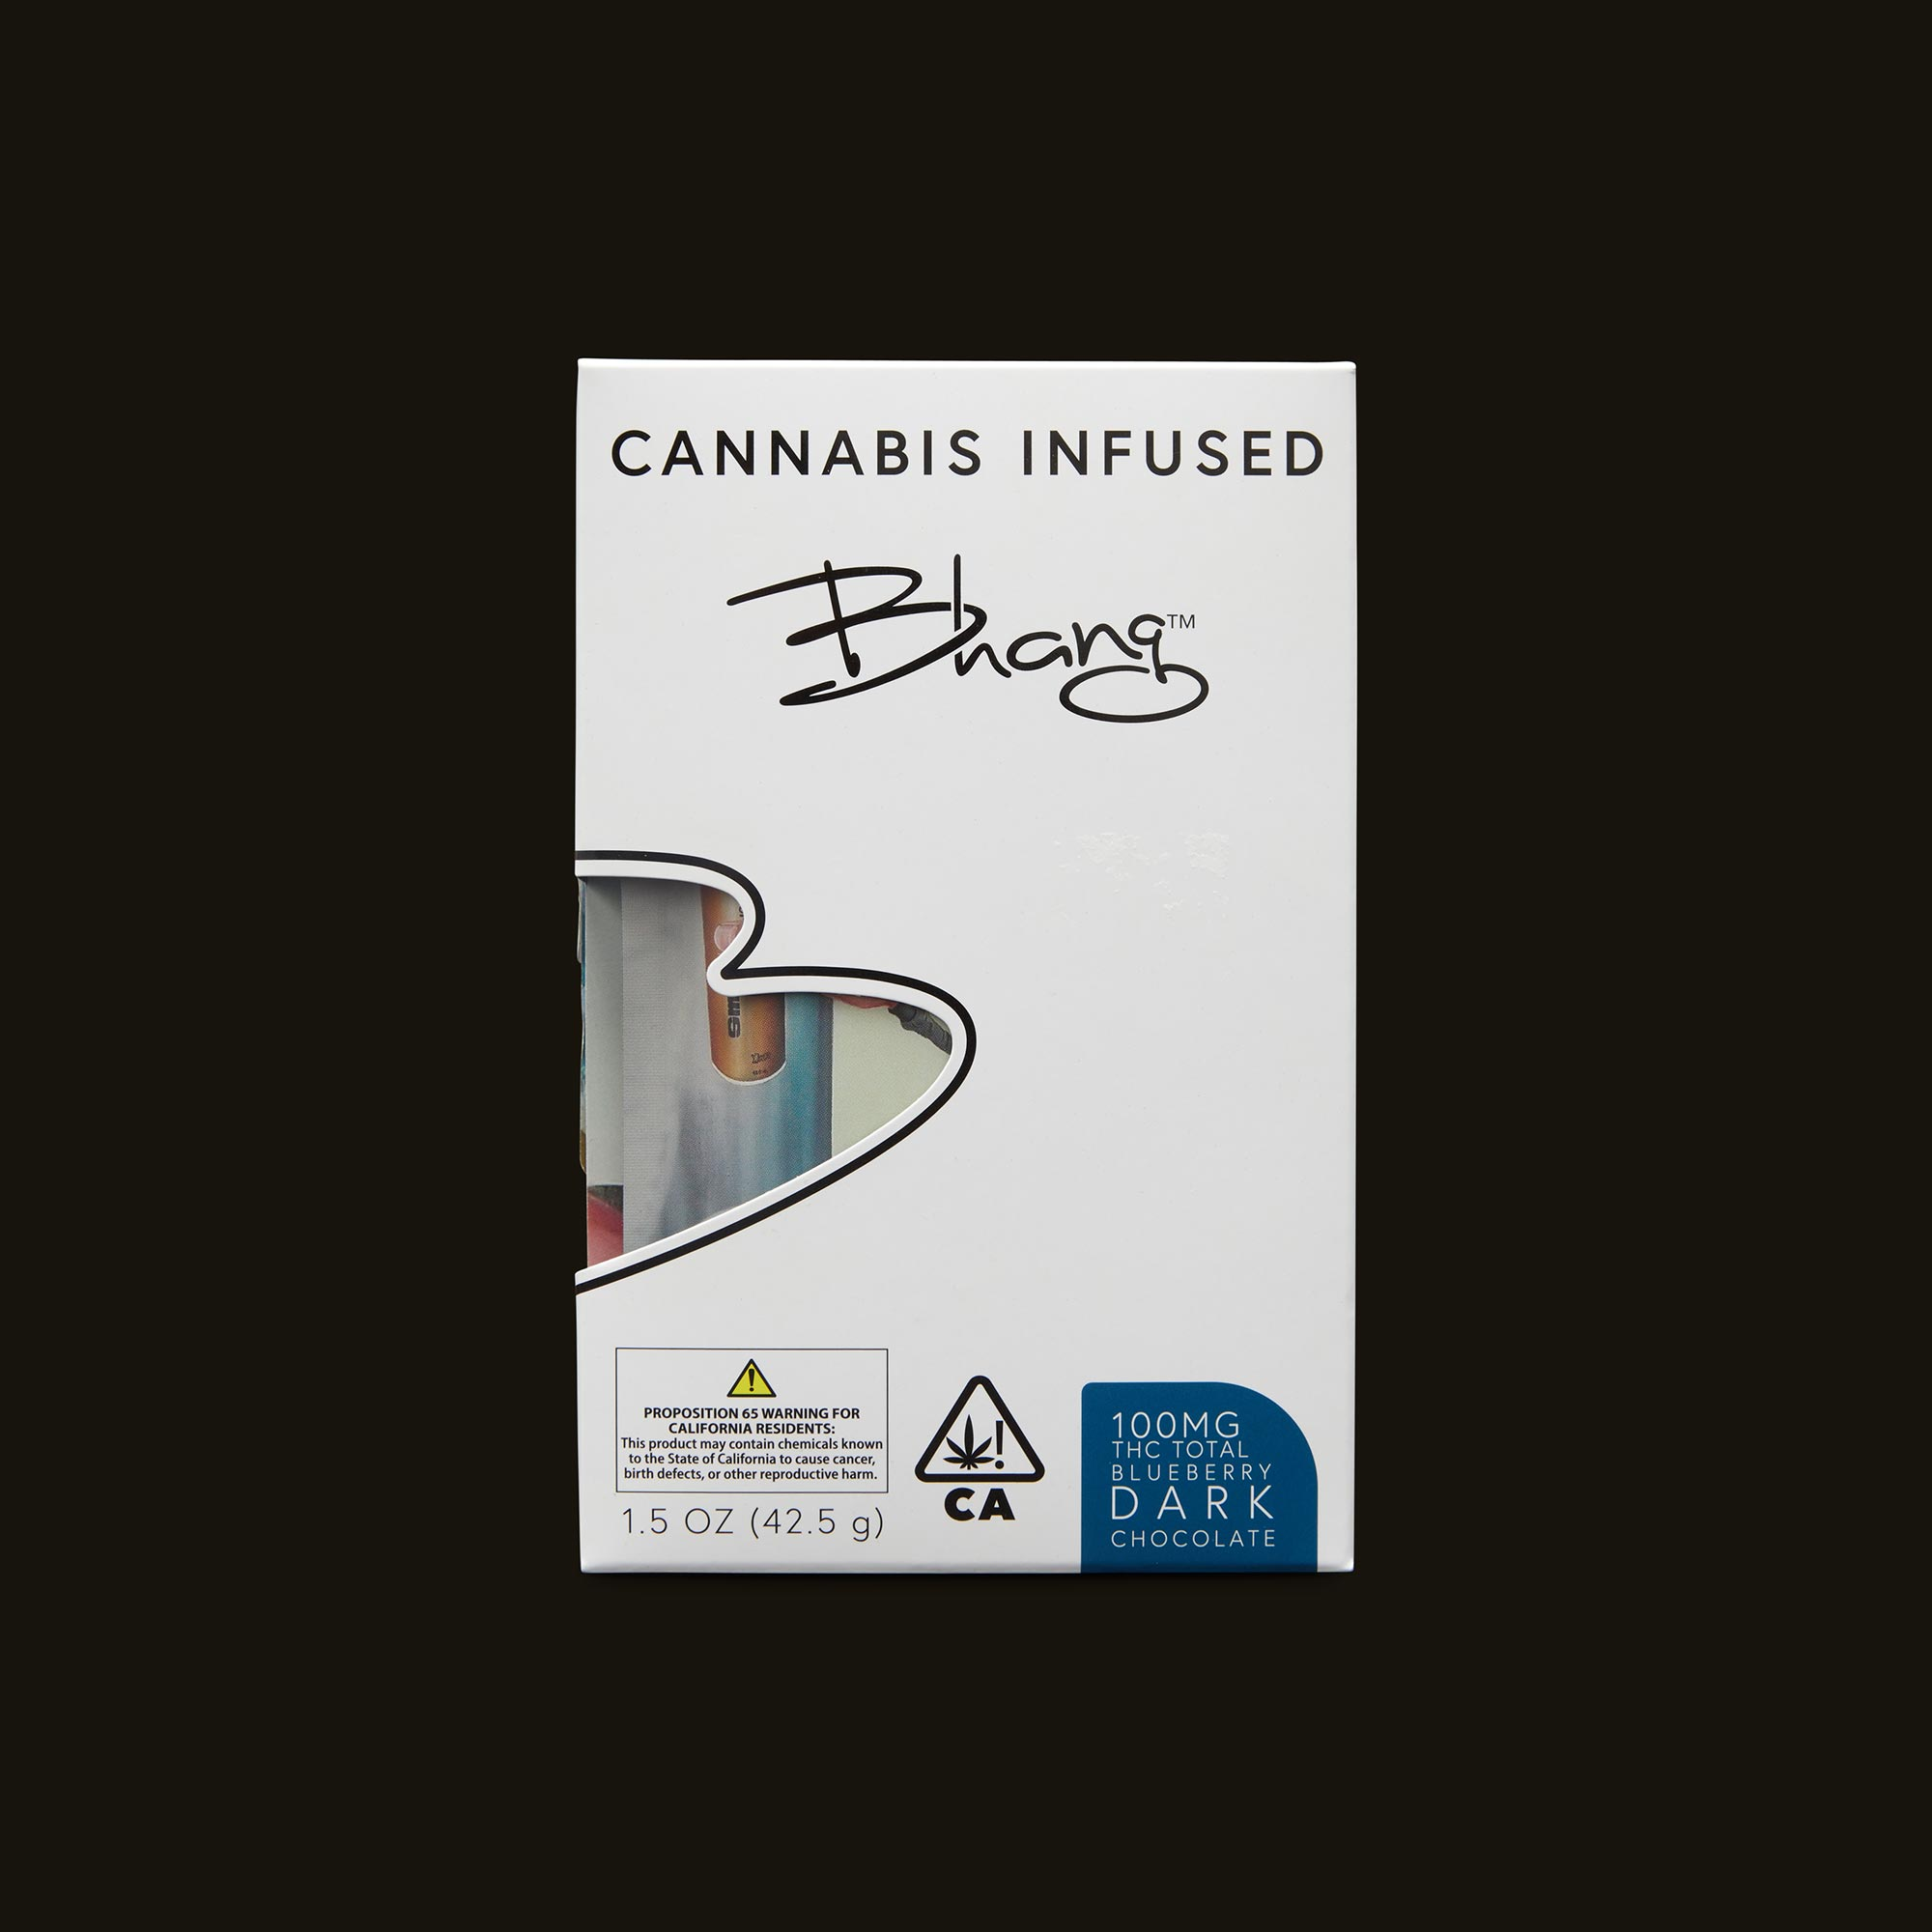 Bhang Blueberry Dark Chocolate Front Packaging